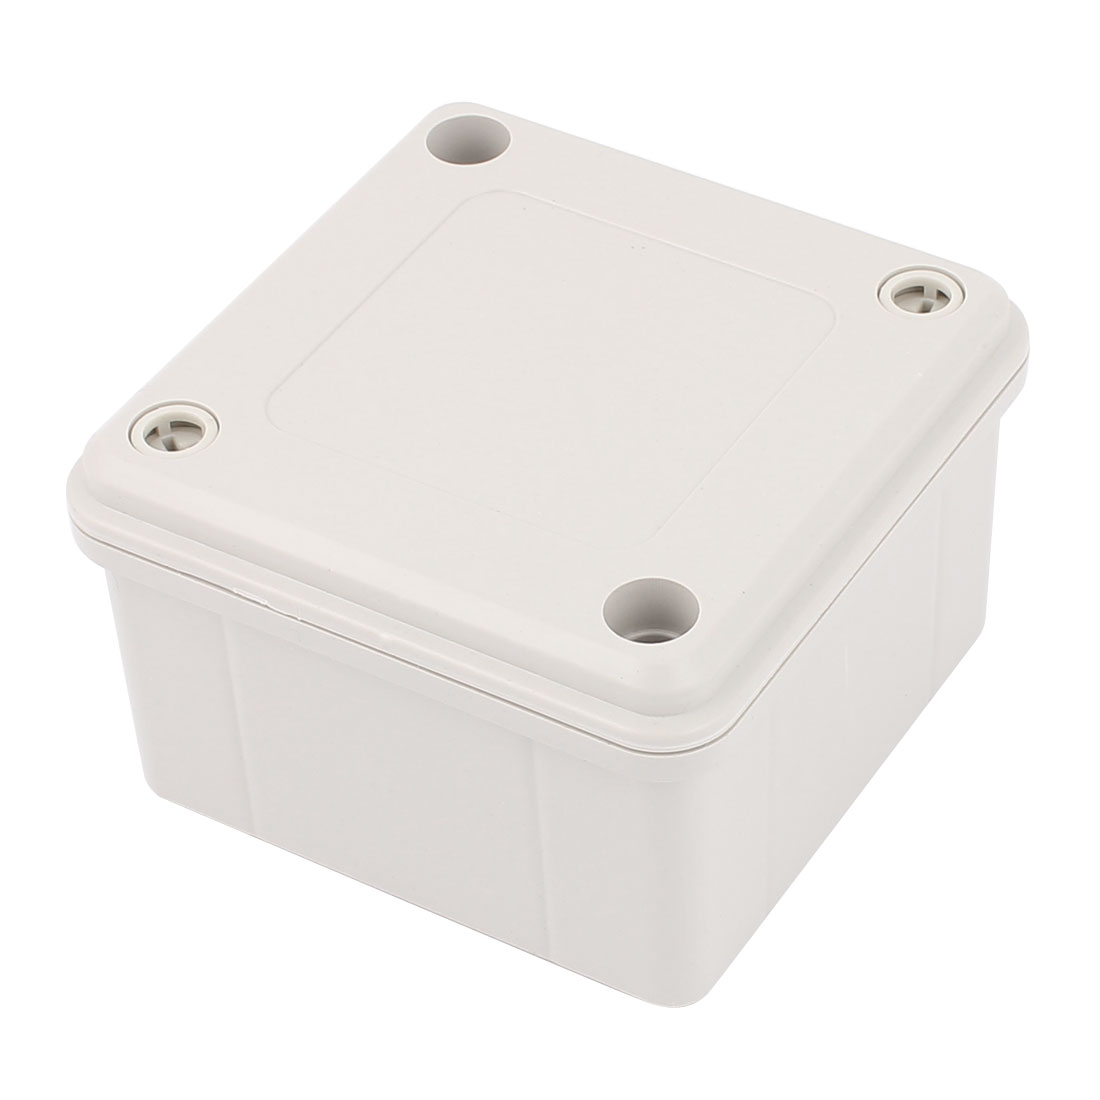 96mm x 96mm x 60mm Dustproof IP65 Sealed Joint DIY Project Electrical Junction Box